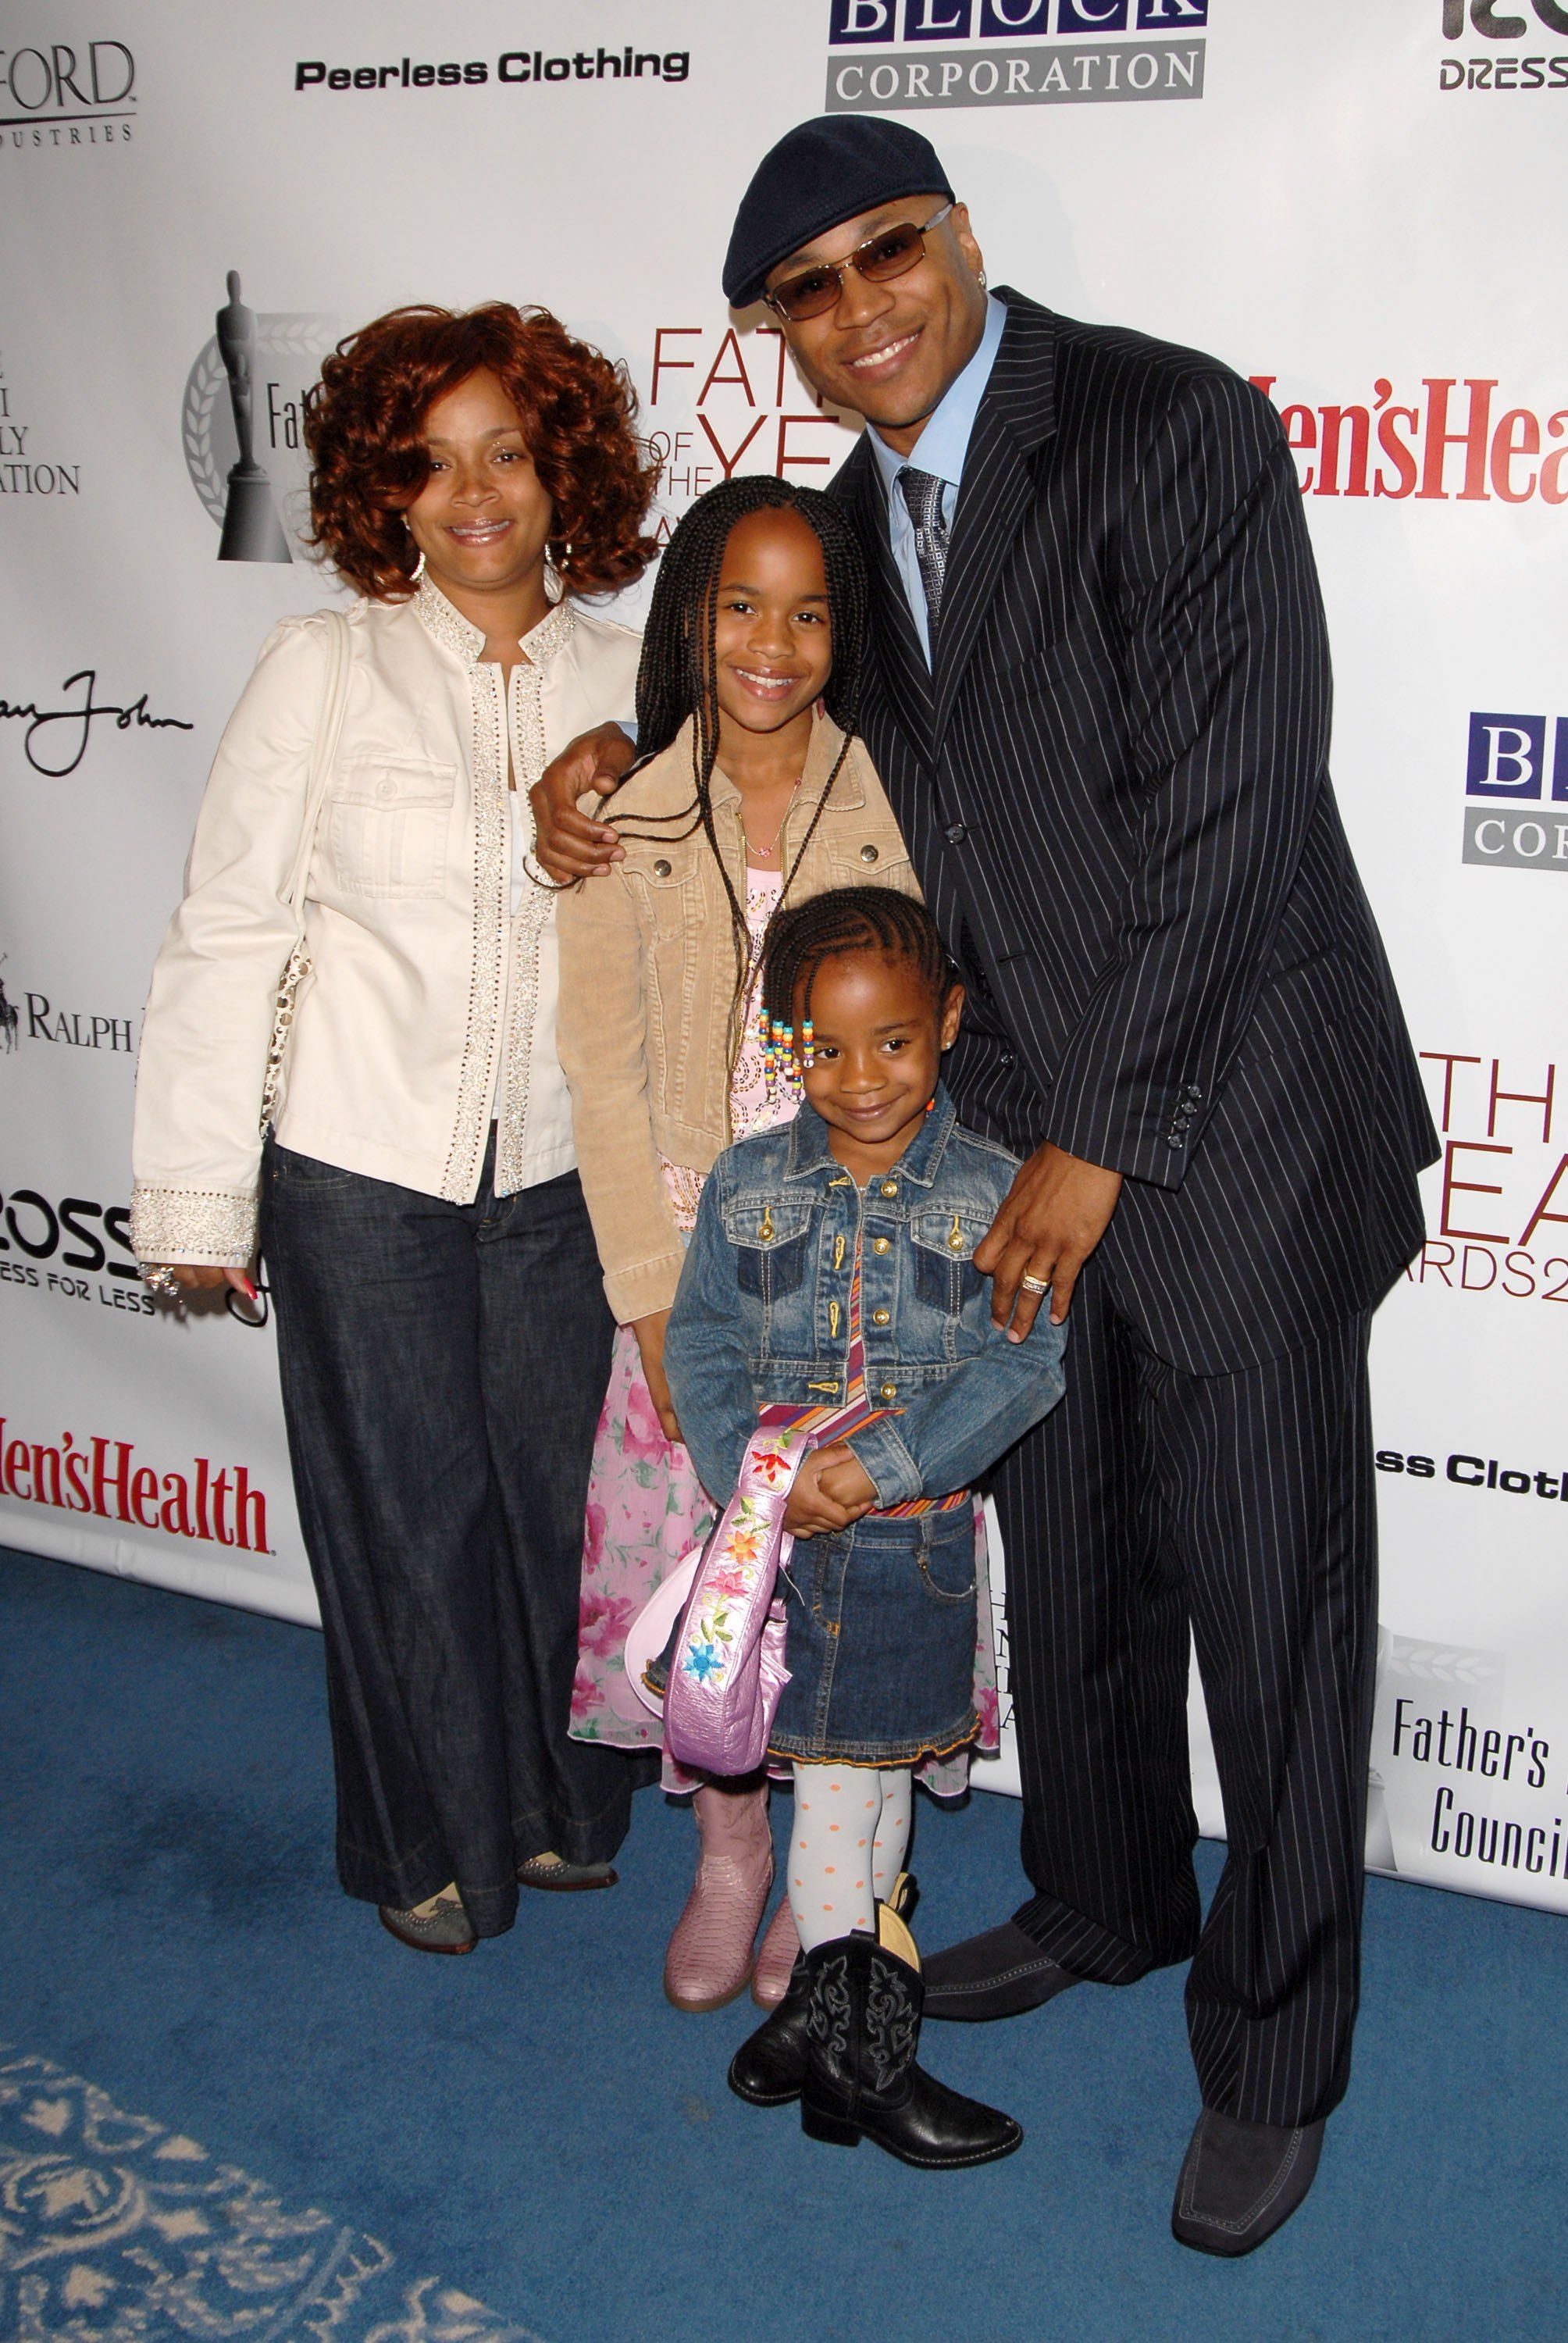 """""""NCIS: Los Angeles"""" actor LL Cool J and family at the Annual Father of the Year Awards on June 8, 2006 in N.Y.   Photo: Getty Images"""